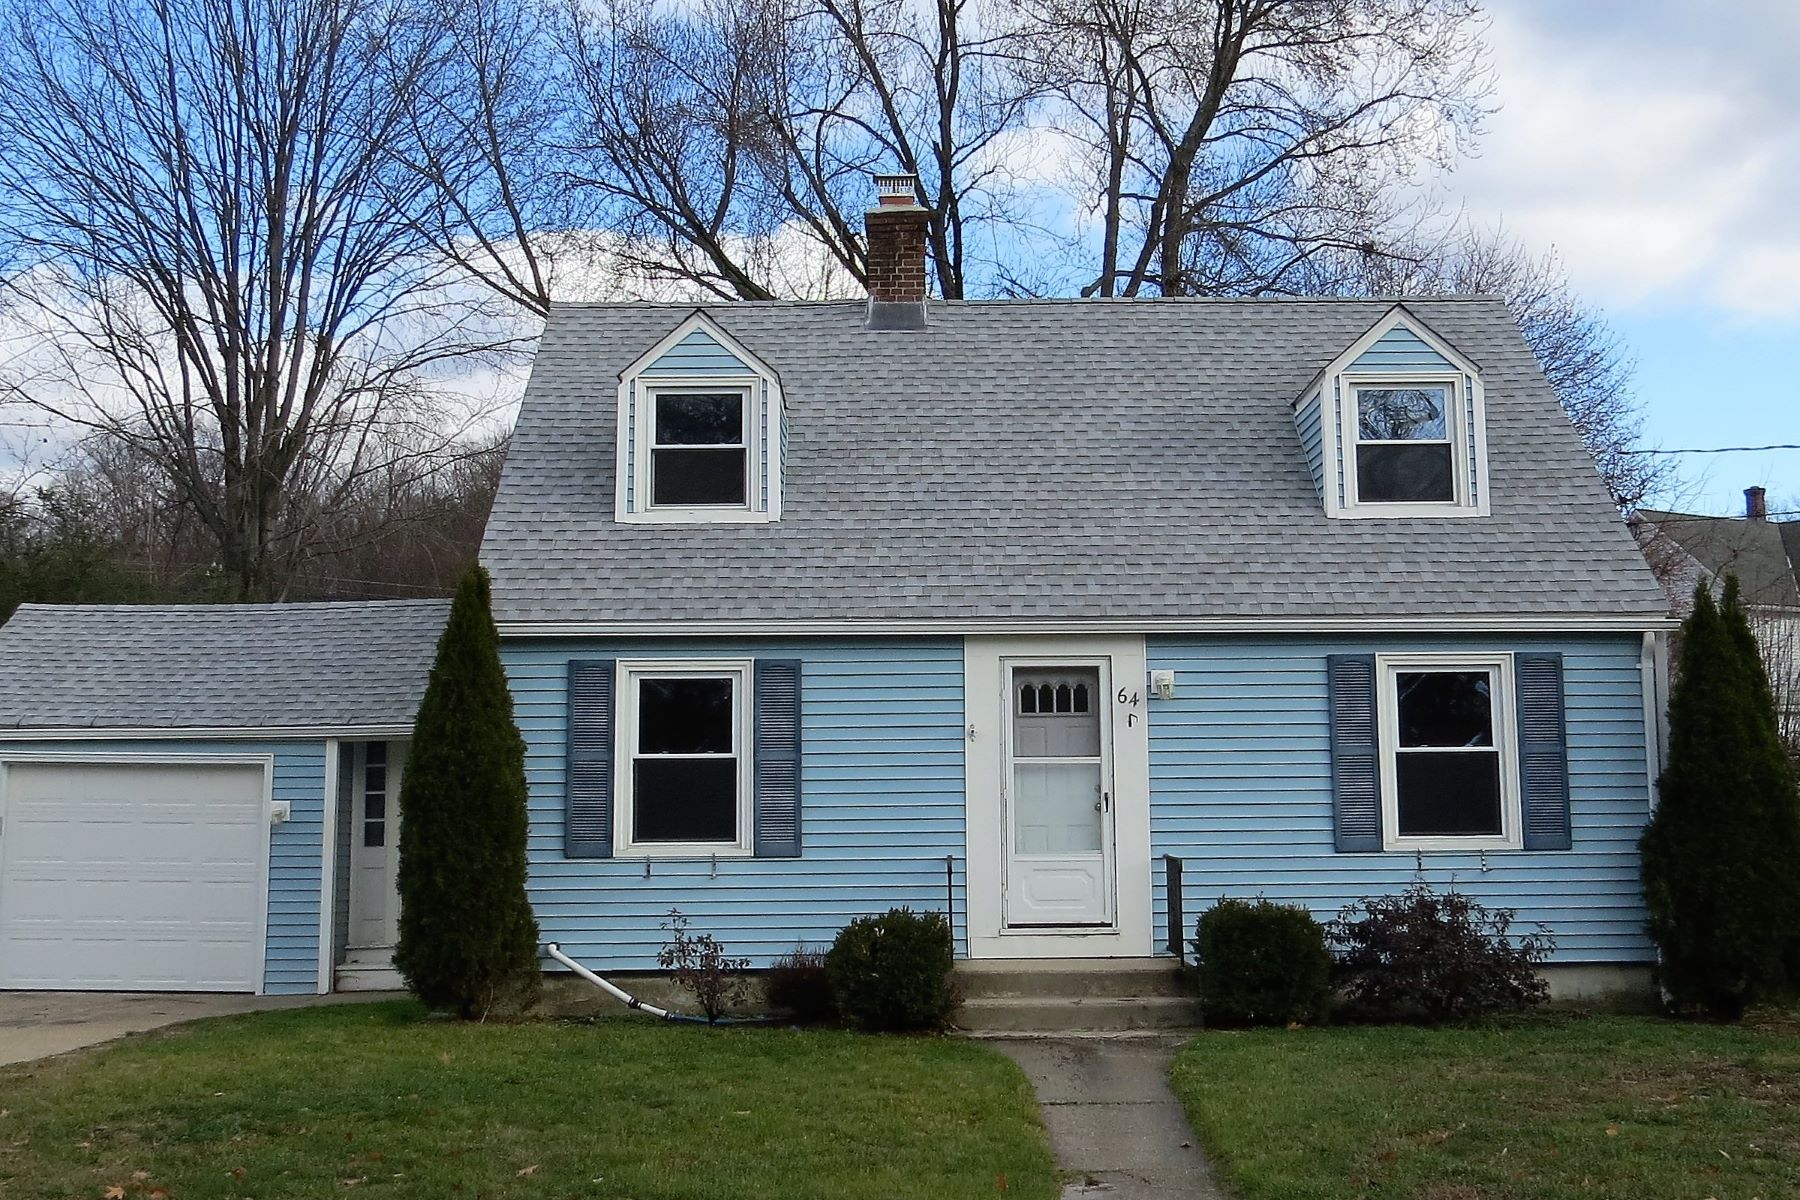 Casa Unifamiliar por un Venta en Adorable Cape 64 Elsie St Torrington, Connecticut 06790 Estados Unidos